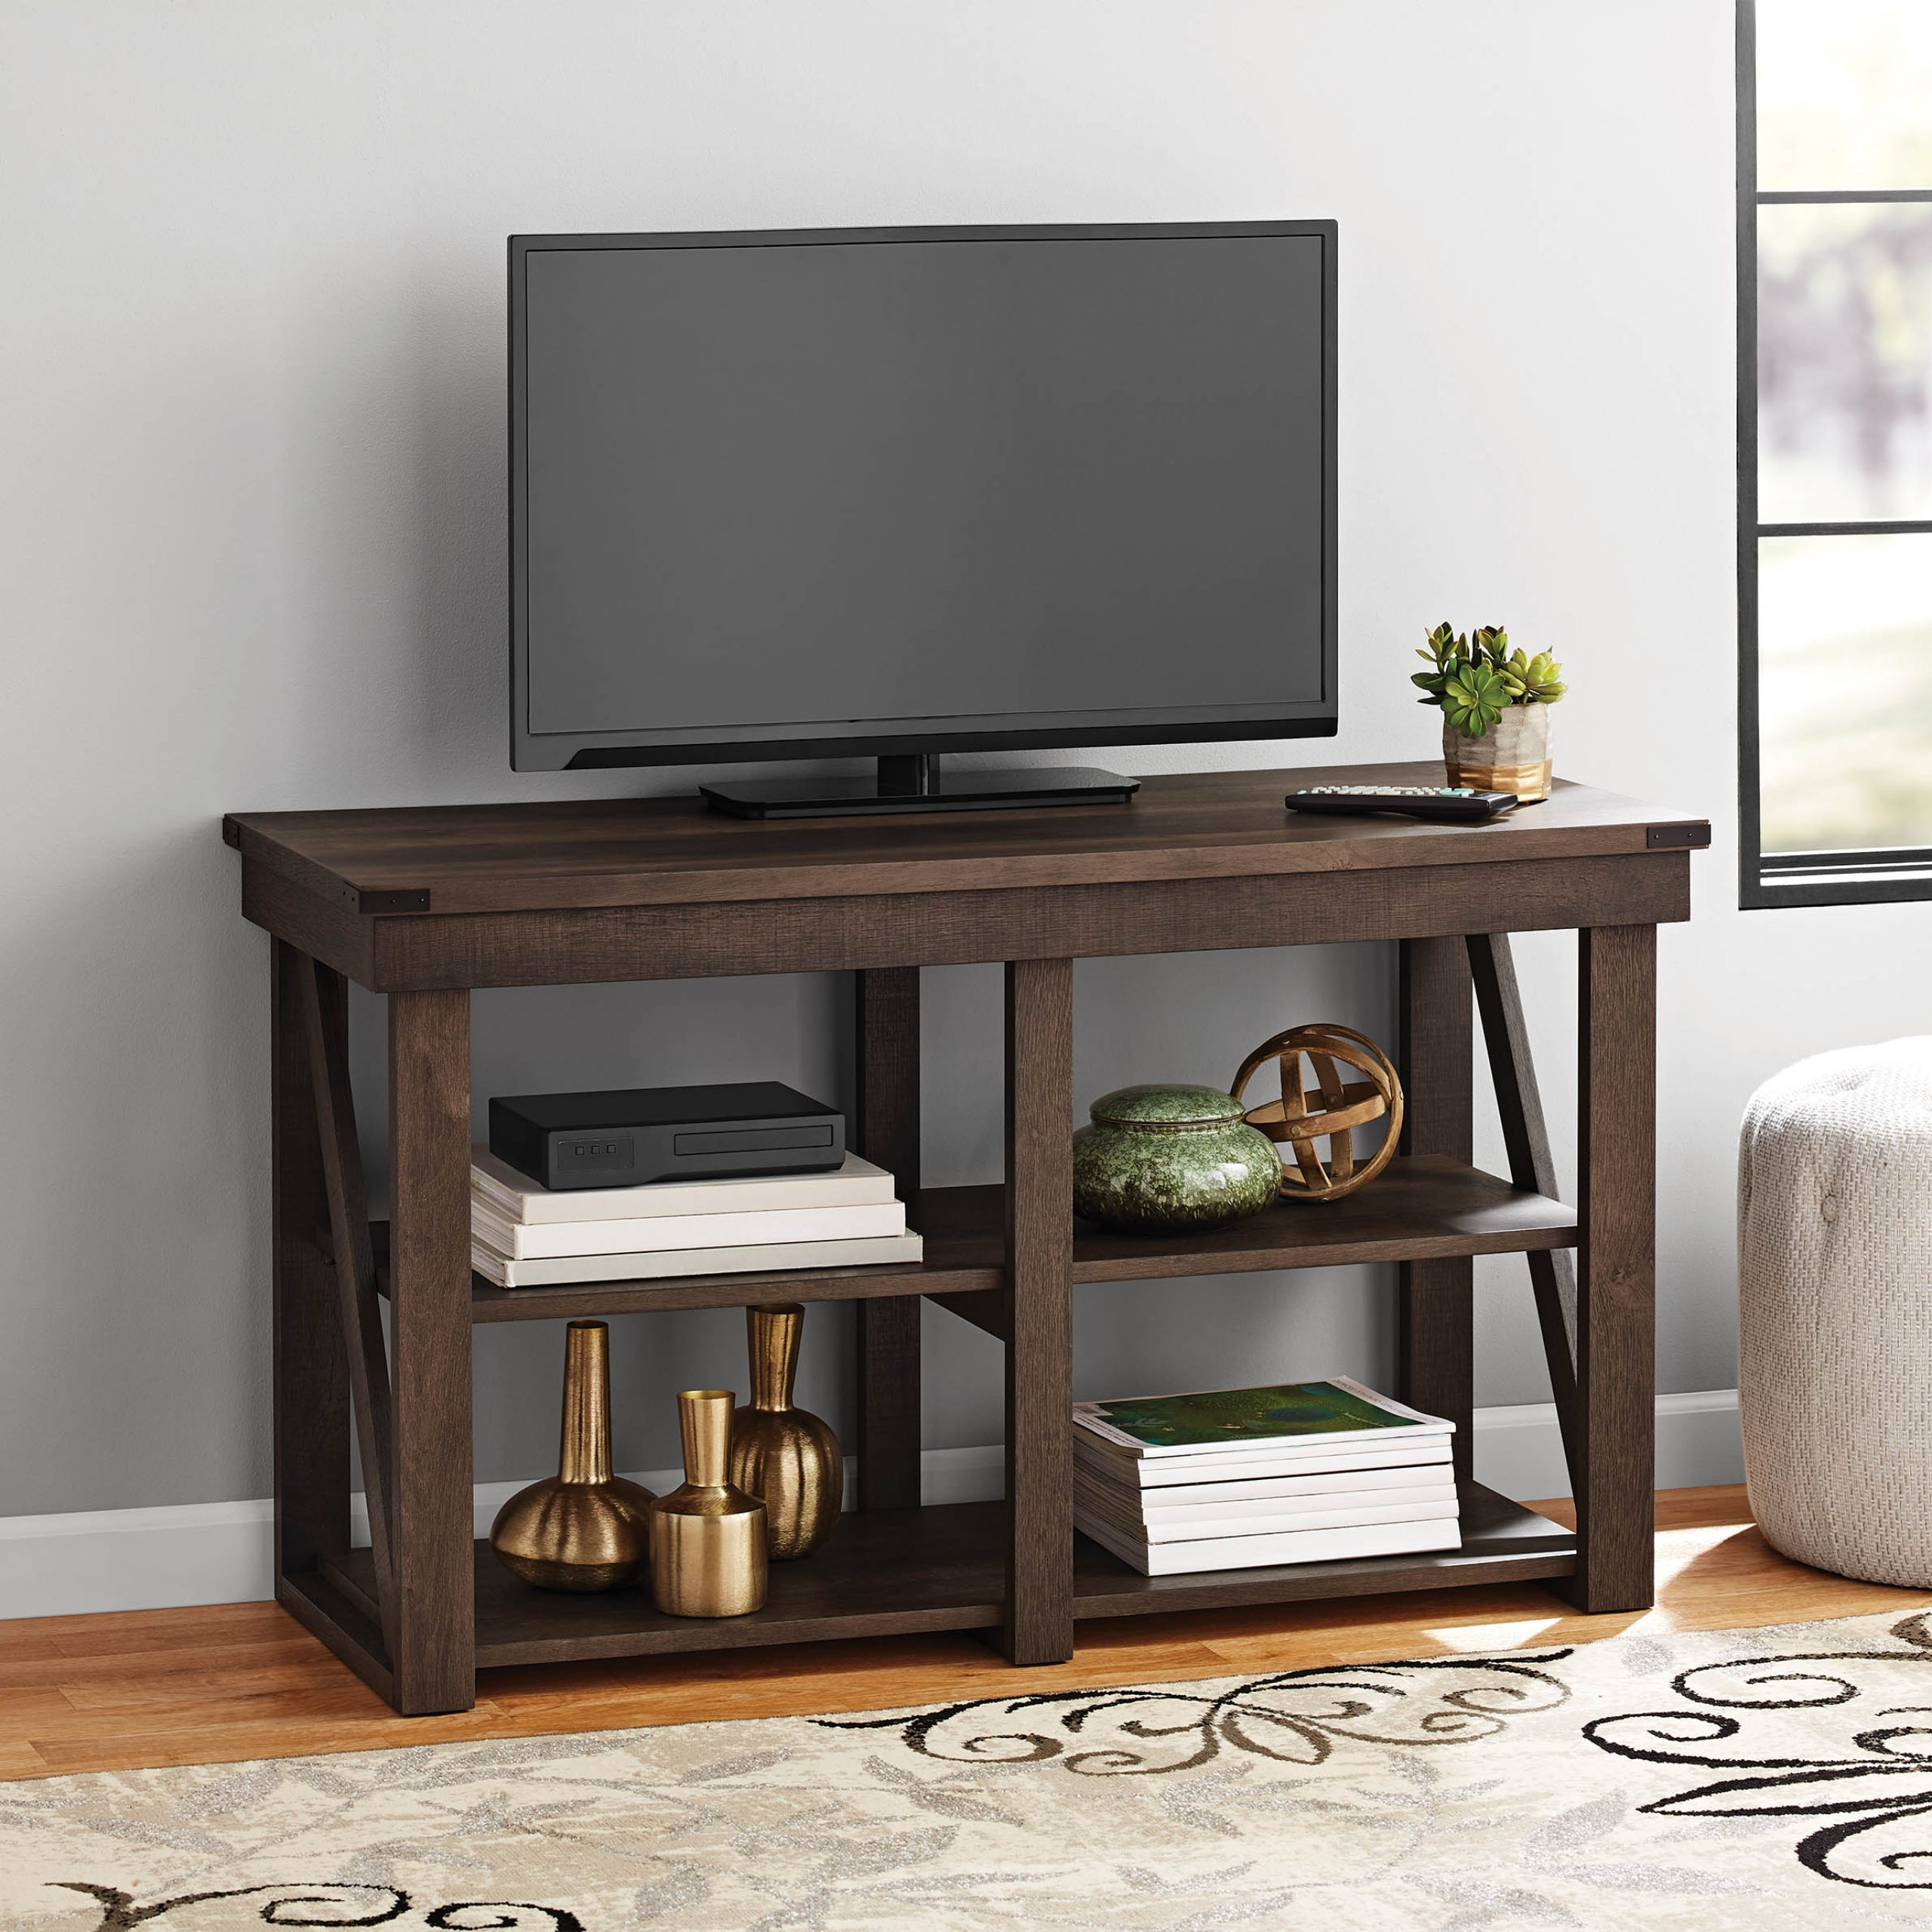 """Mainstays Lawson Tv Stand For Tvs Up To 55"""", Espresso Pertaining To Lansing Tv Stands For Tvs Up To 55"""" (View 6 of 20)"""